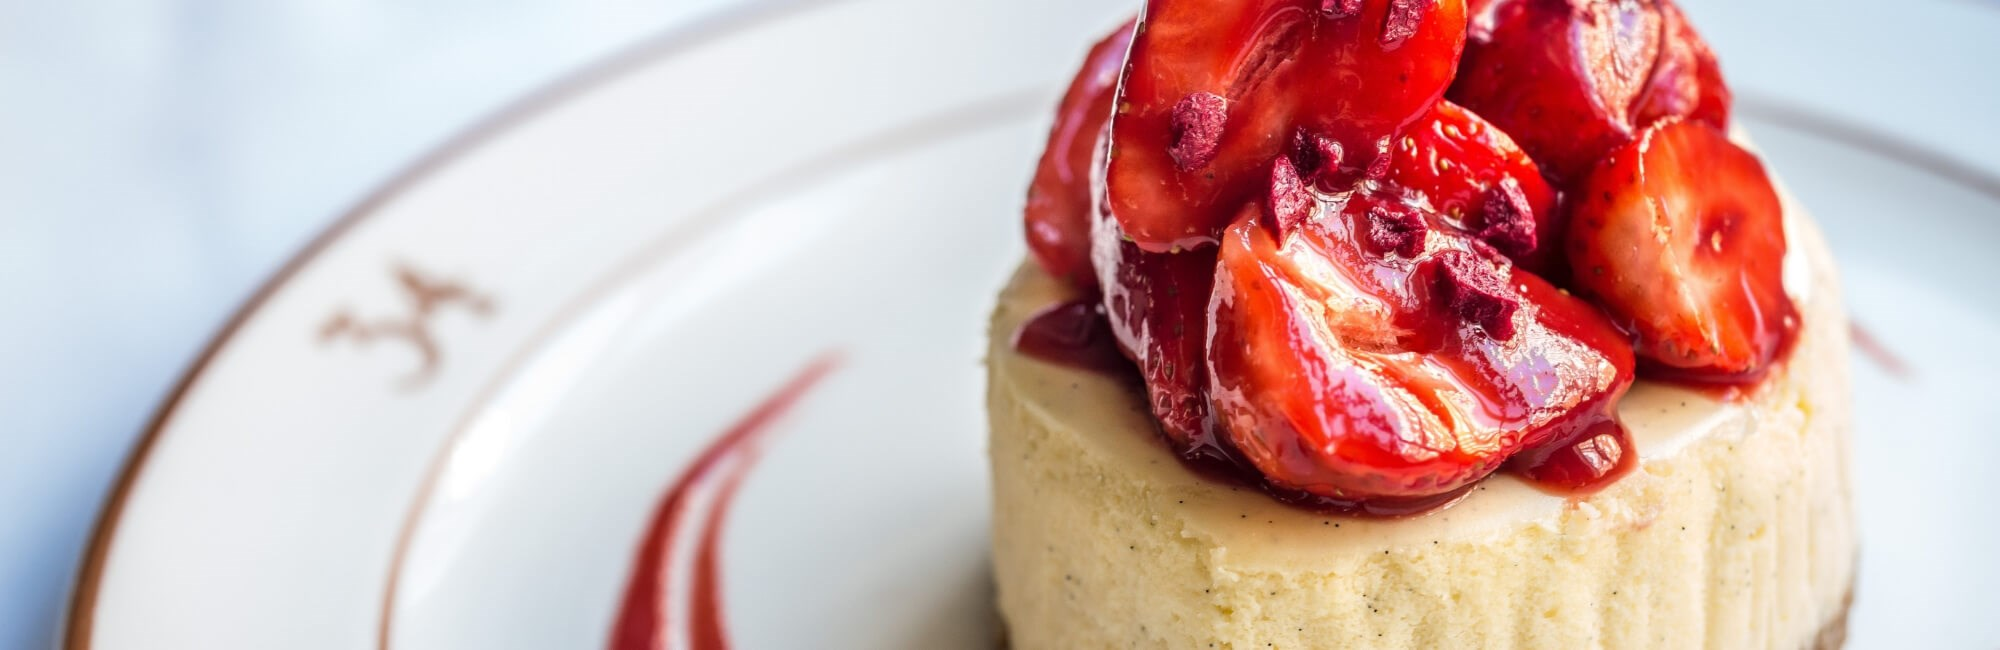 34 Mayfair's Strawberry Cheesecake is available at restaurant in Mayfair